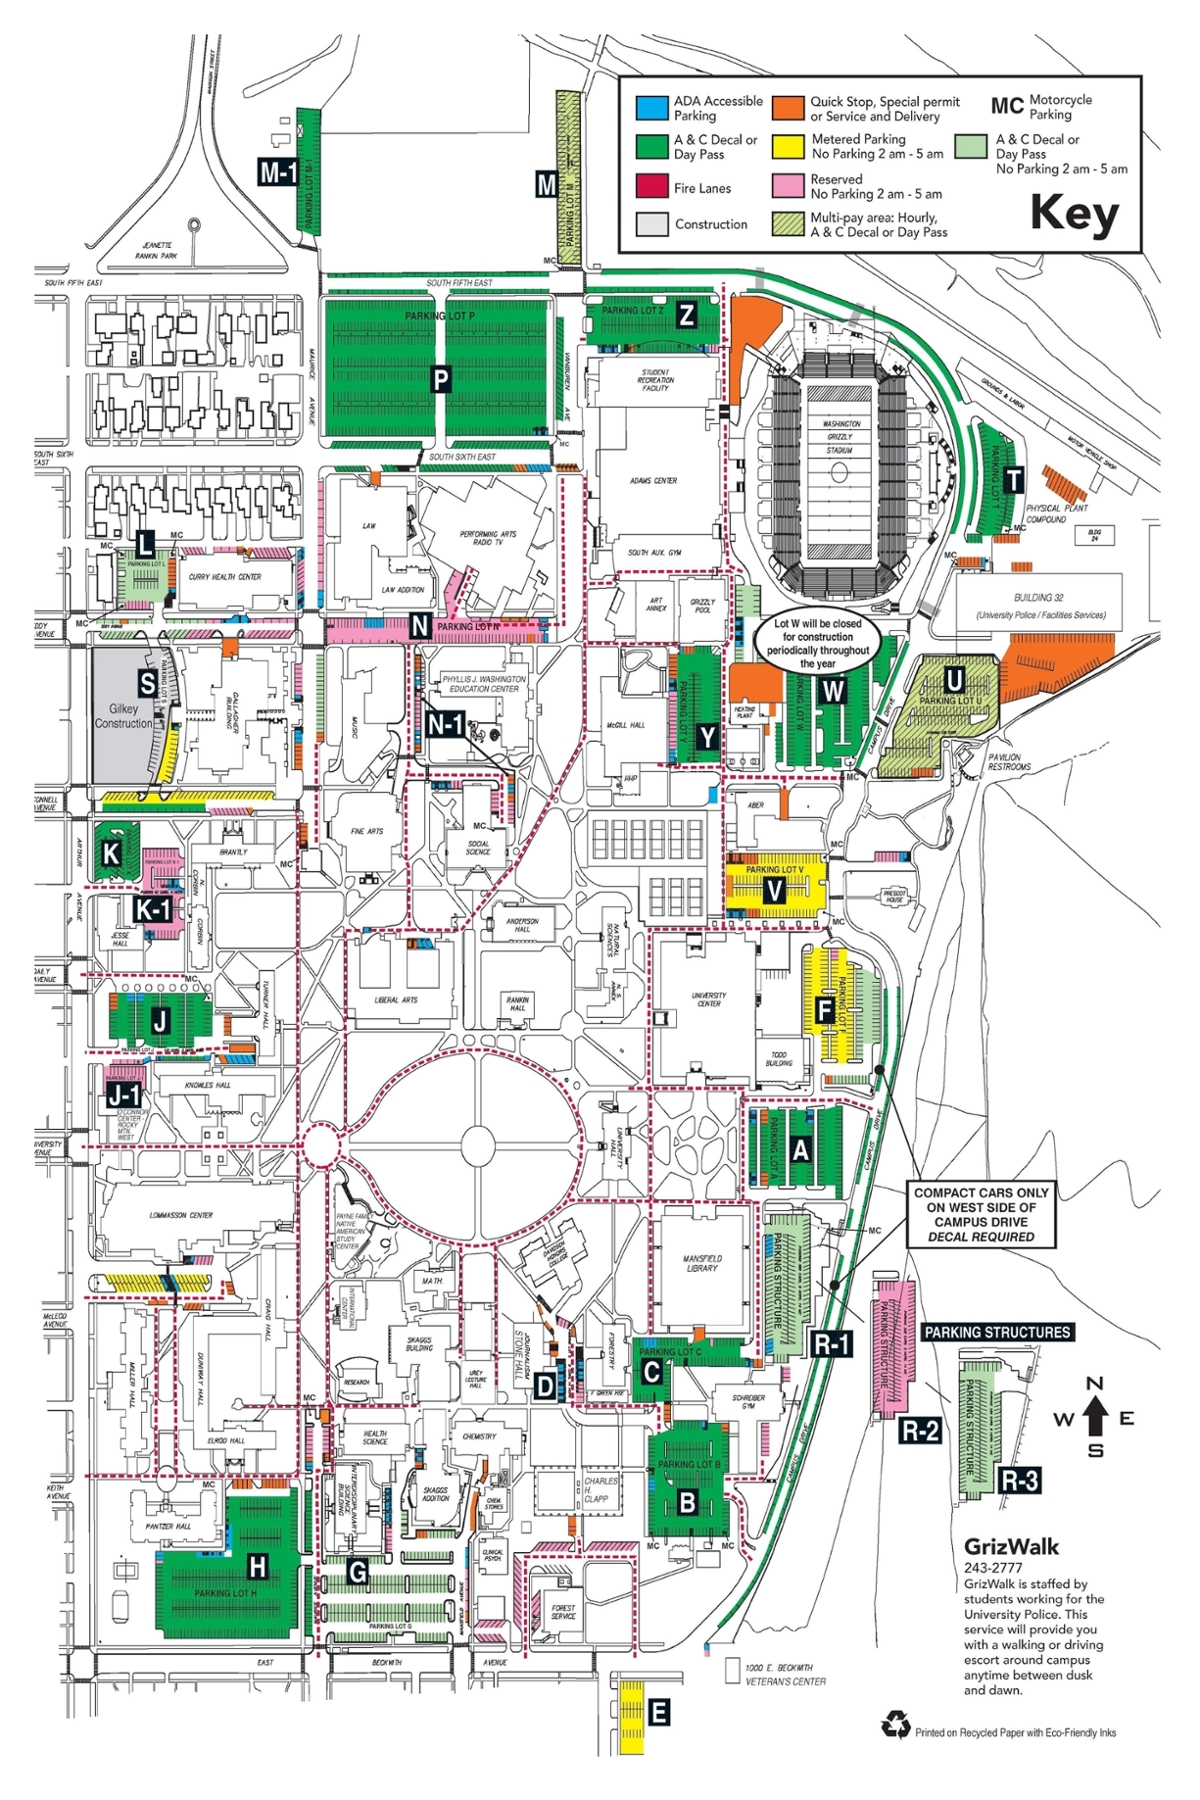 MainCampusParking San Go State University Parking Map on oregon state university map, montana state university campus map, university business center map, cta bus routes map, princeton university map, university beach map, university library map, chapman university map, university school map, university police, ohio university campus map, mankato state university map, university heat map, auburn university map, university transit map,